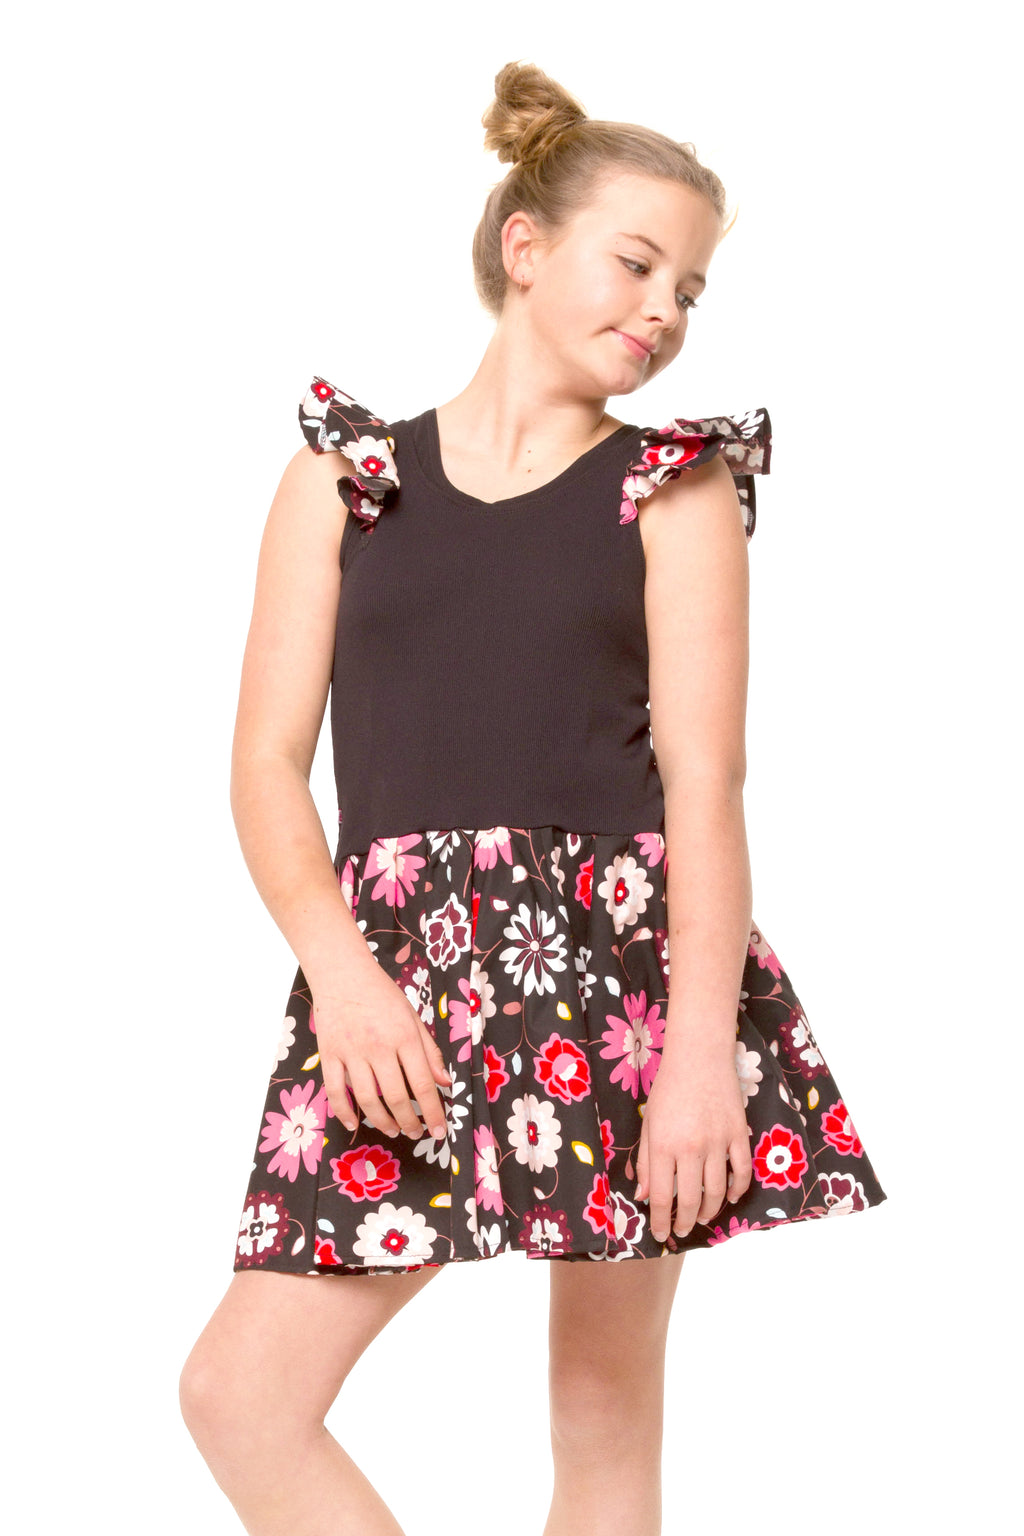 Scarlett - pink and red floral